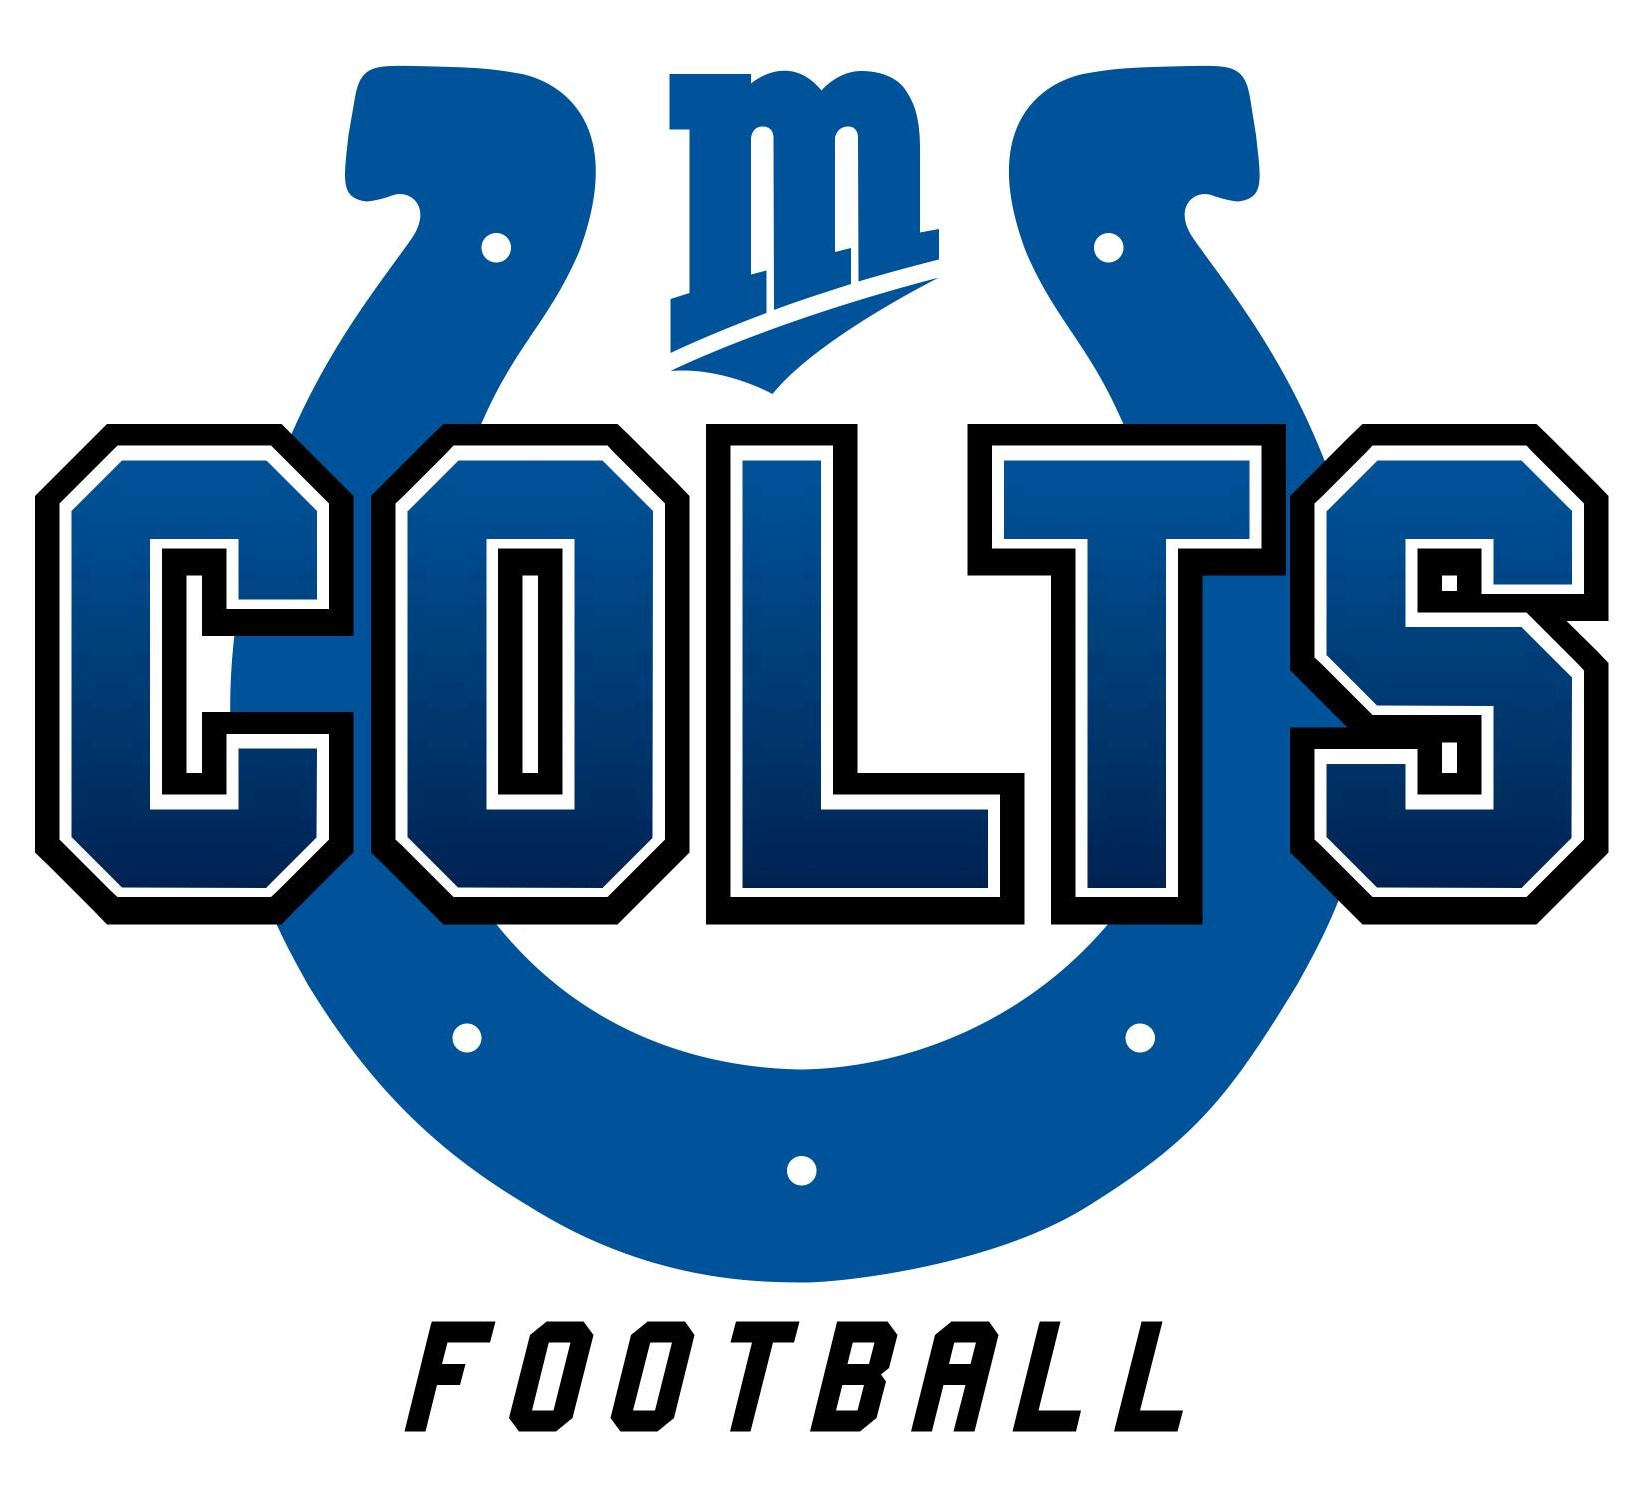 Home of the Colts